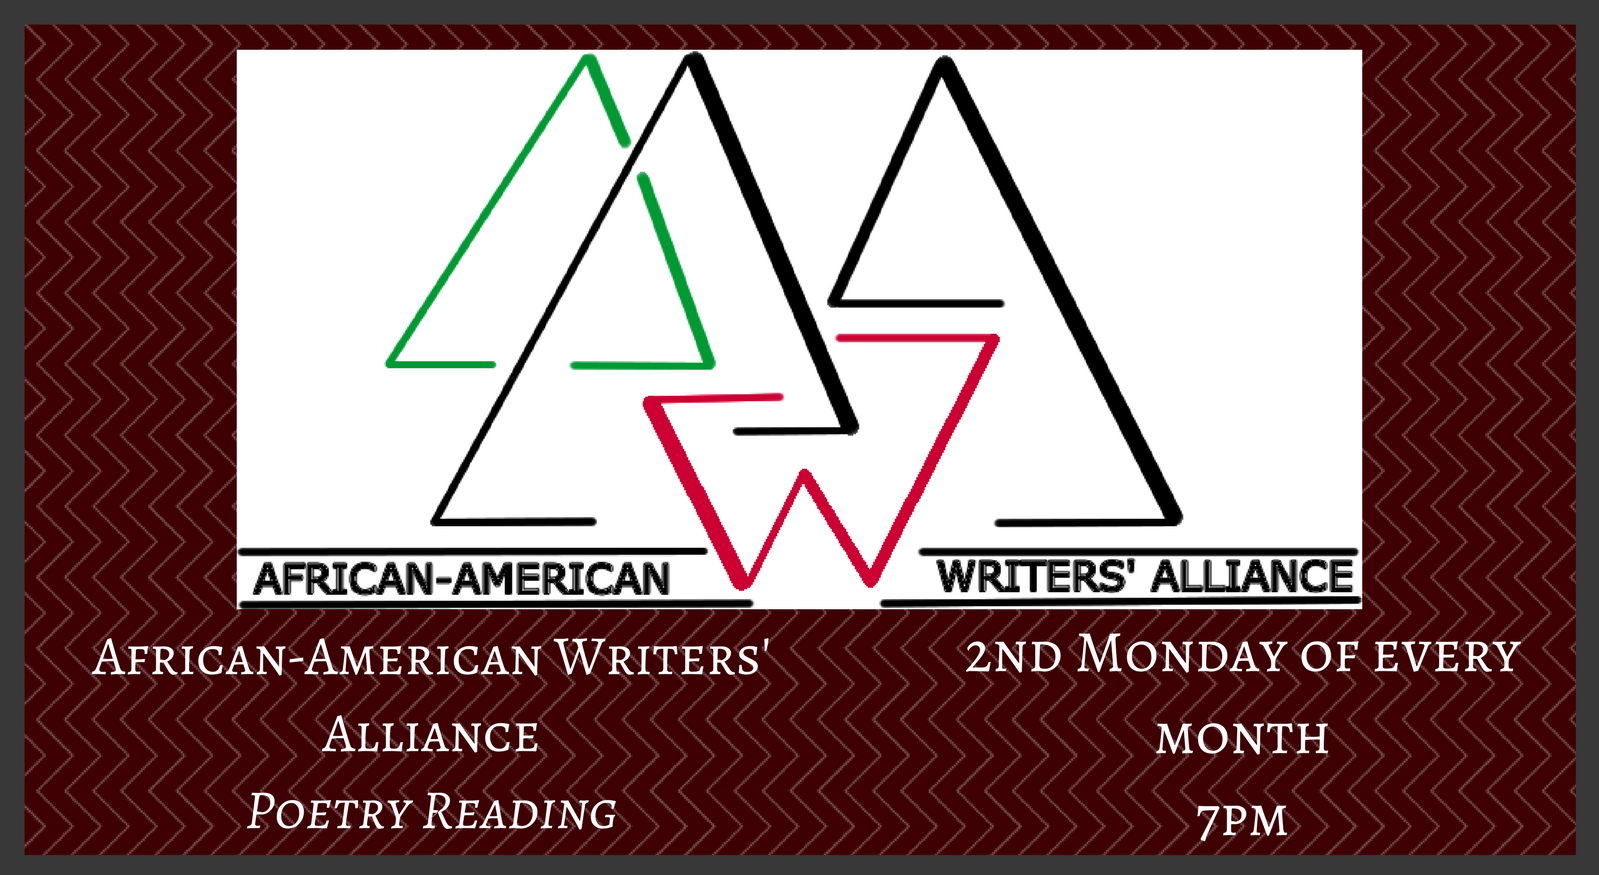 African-American Writers' Alliance Poetry Reading